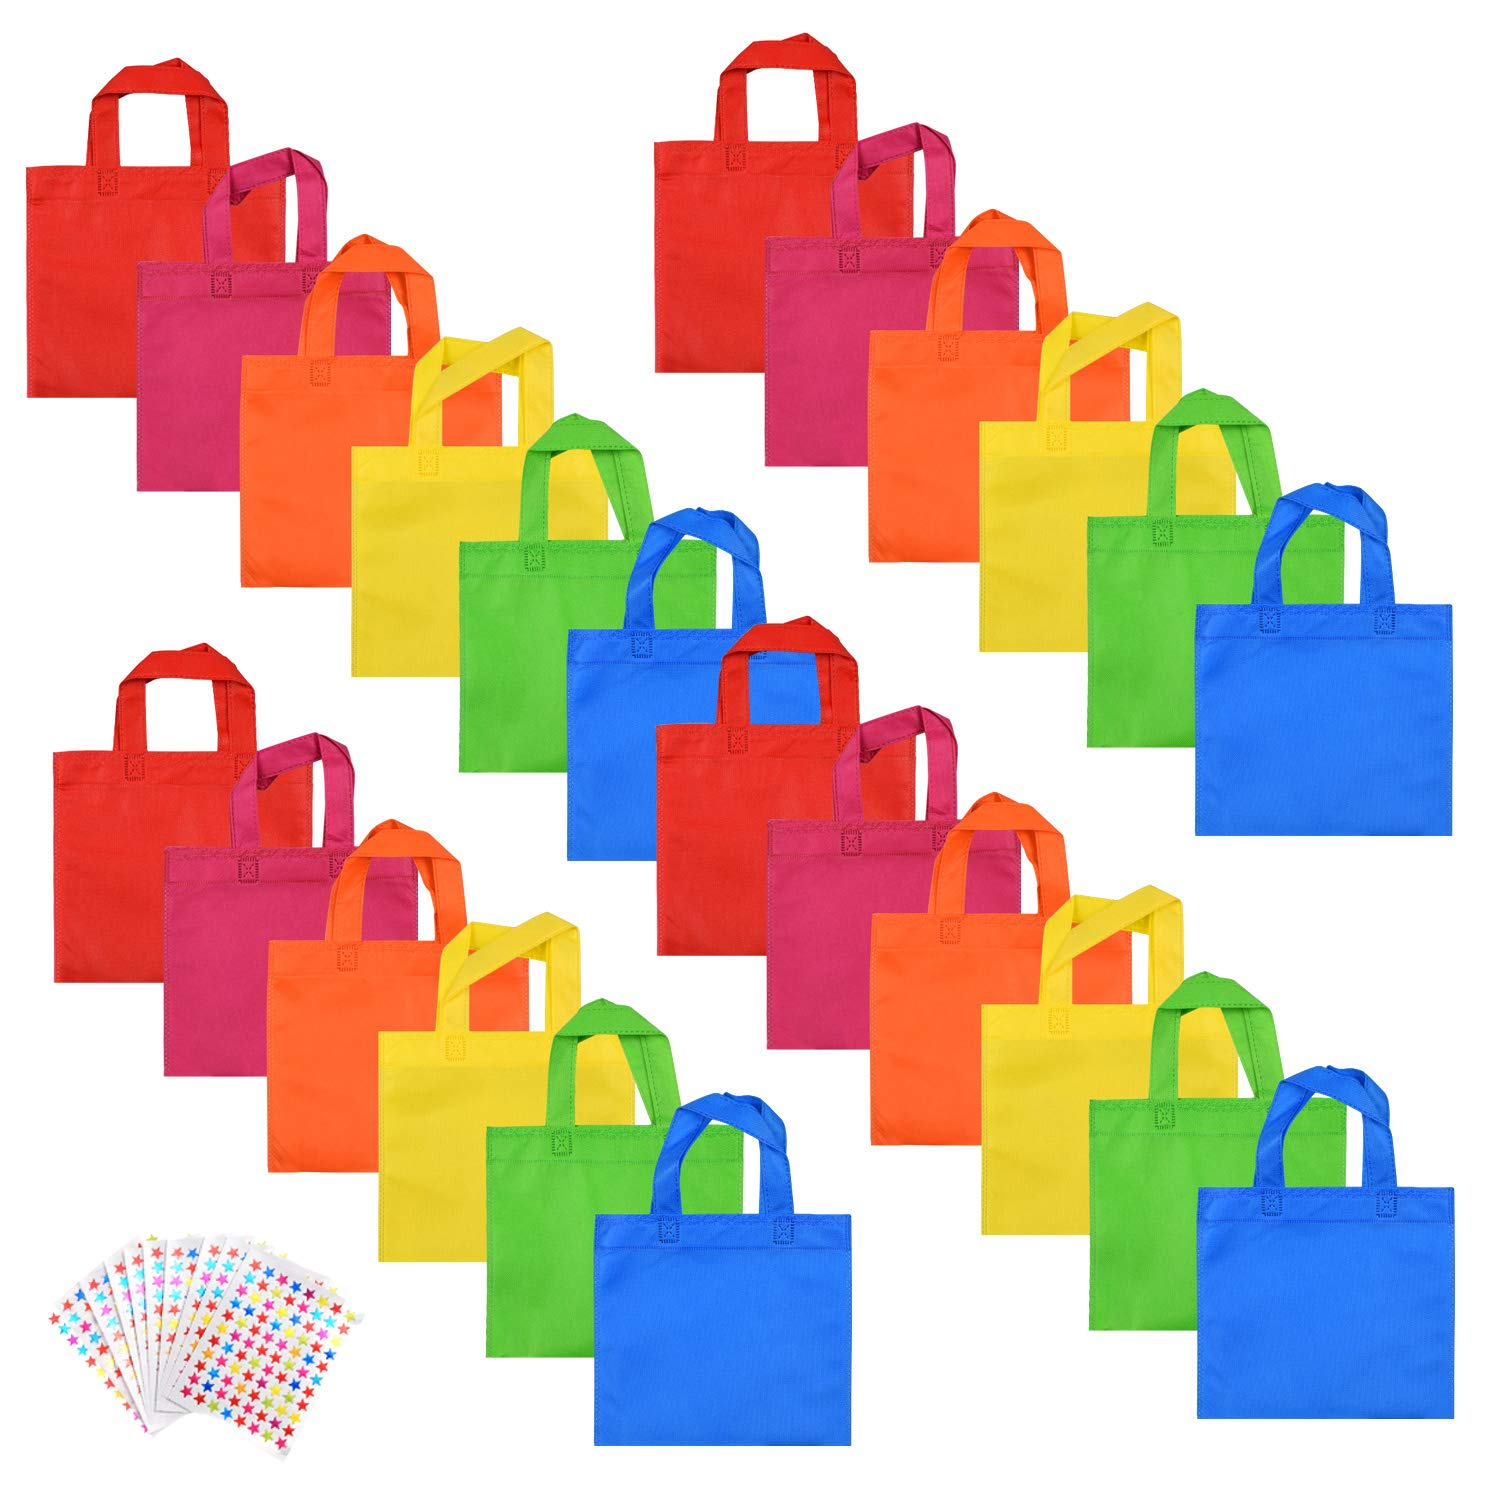 WXJ13 Party Favors Bags Non-woven Treat Bags Handles Brand Rainbow Color Party Gift Tote Bags 10 Pieces Star Stickers, 8 8 Inches, 24 Pieces